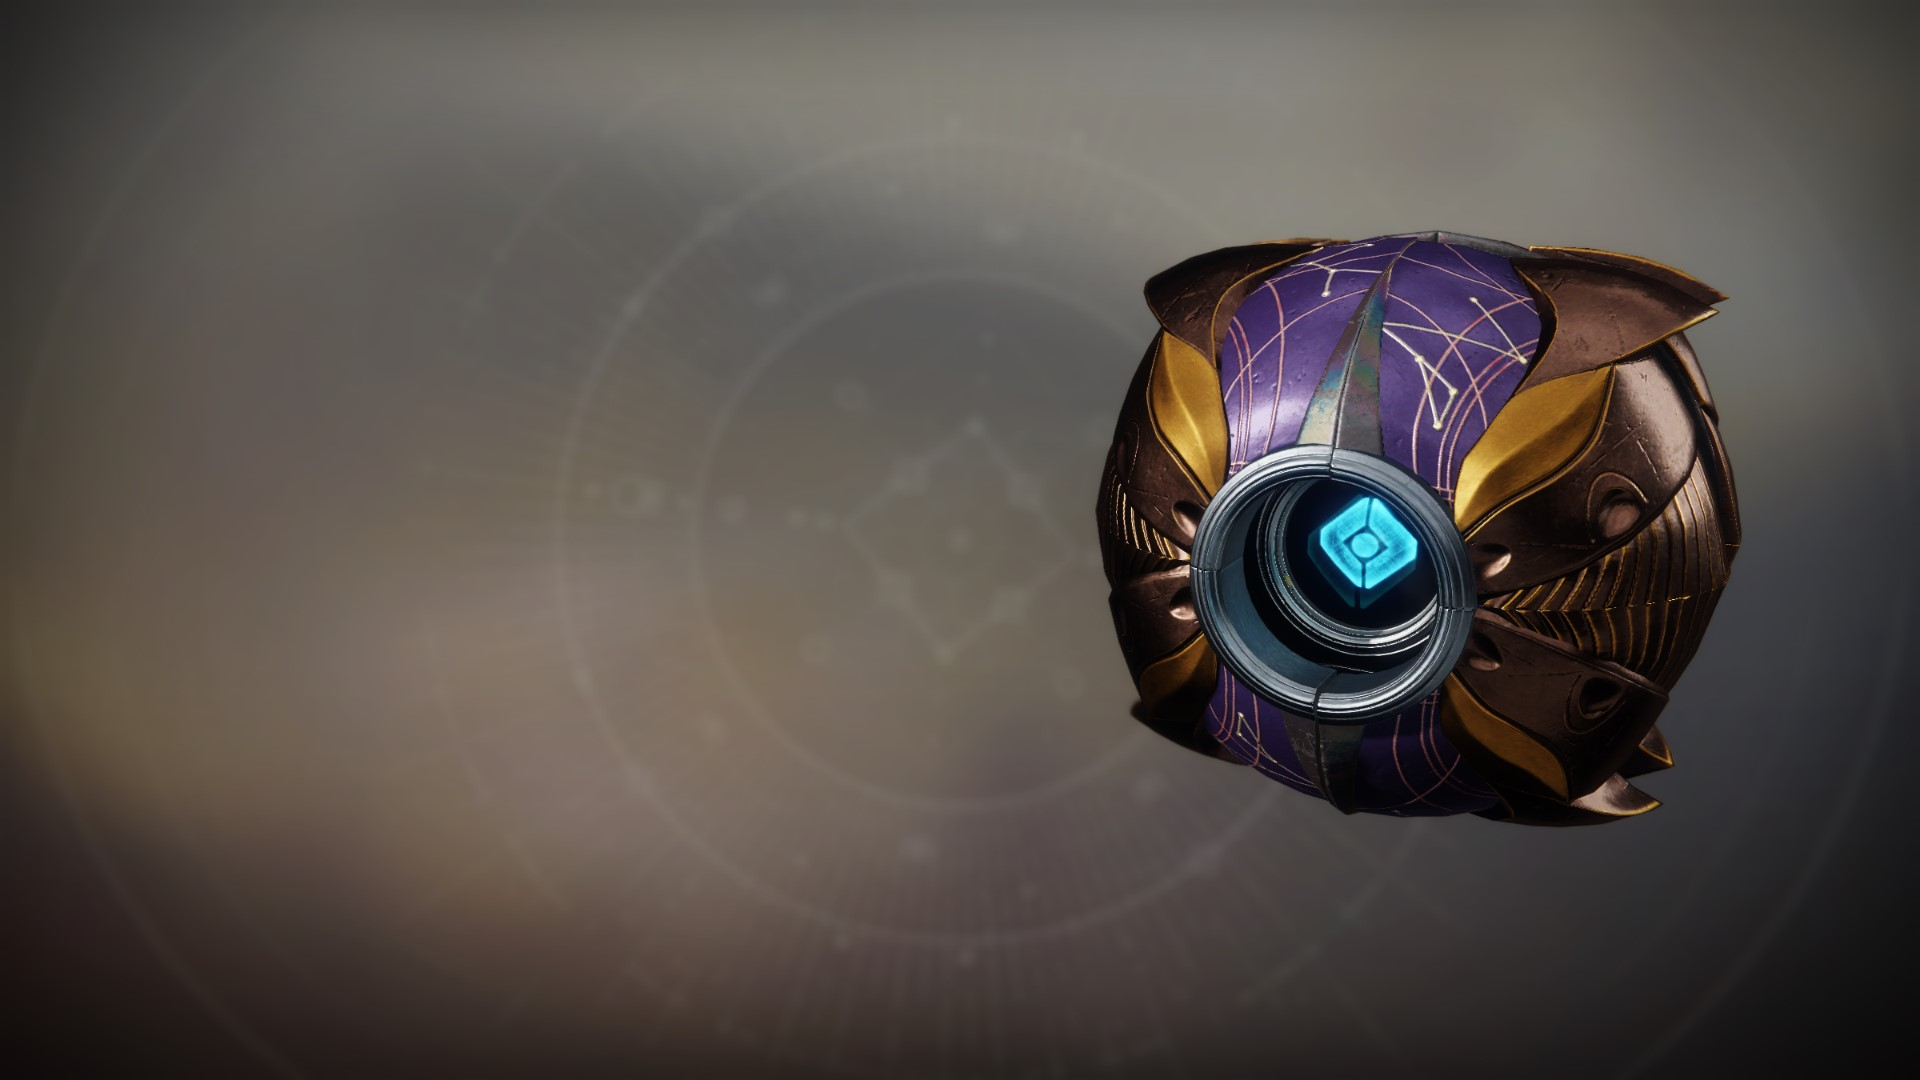 An in-game render of the Ophiuchus Shell.